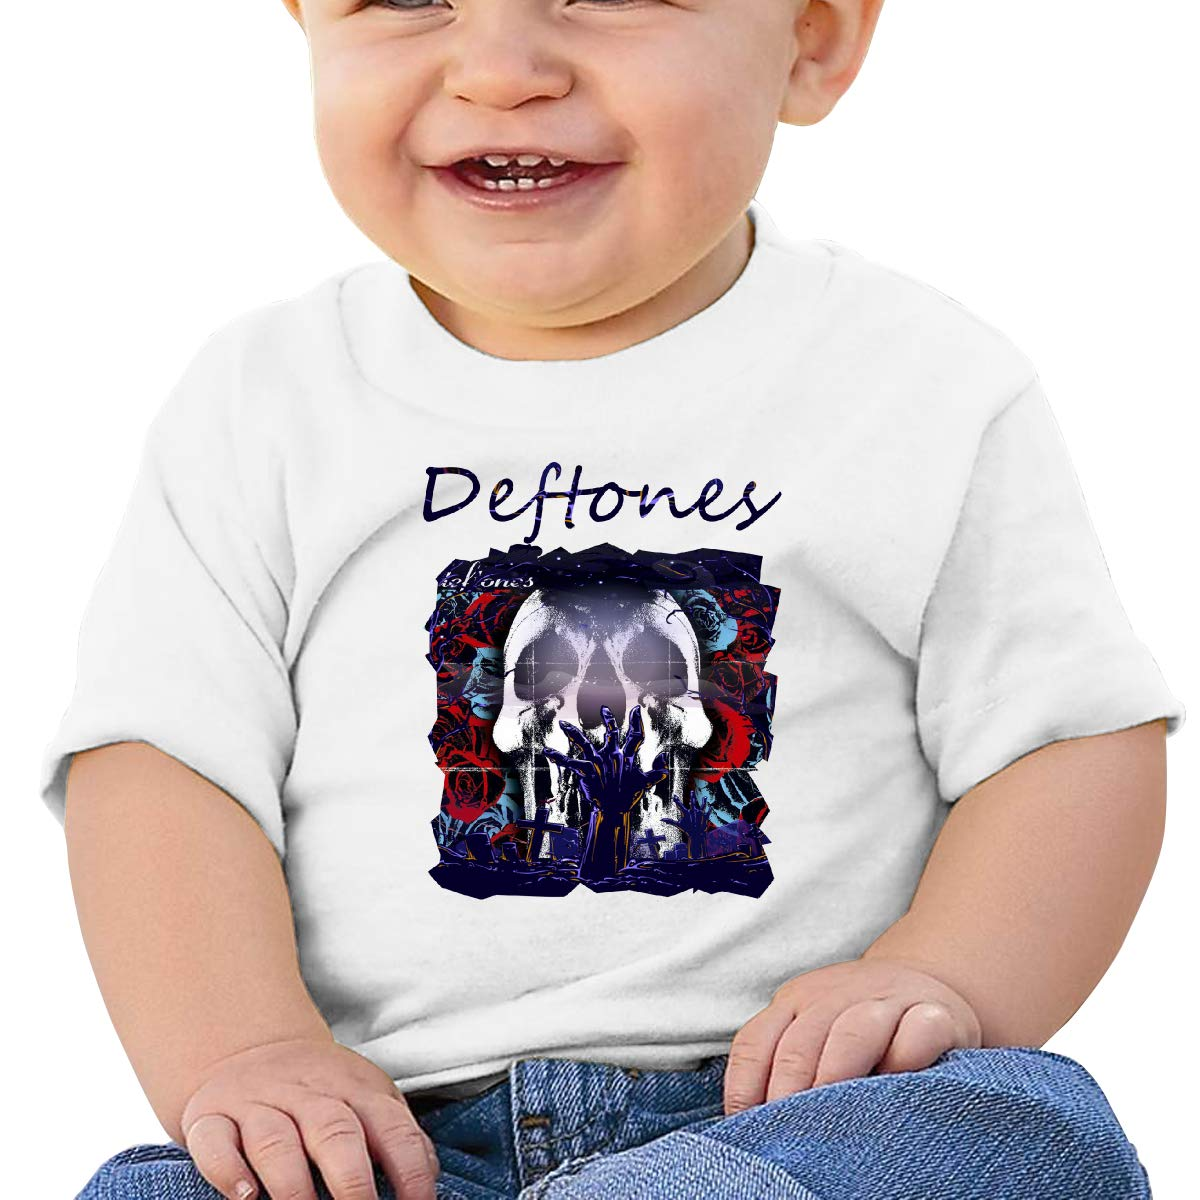 Kangtians Baby Deftones Shirt Toddler Cotton Tee